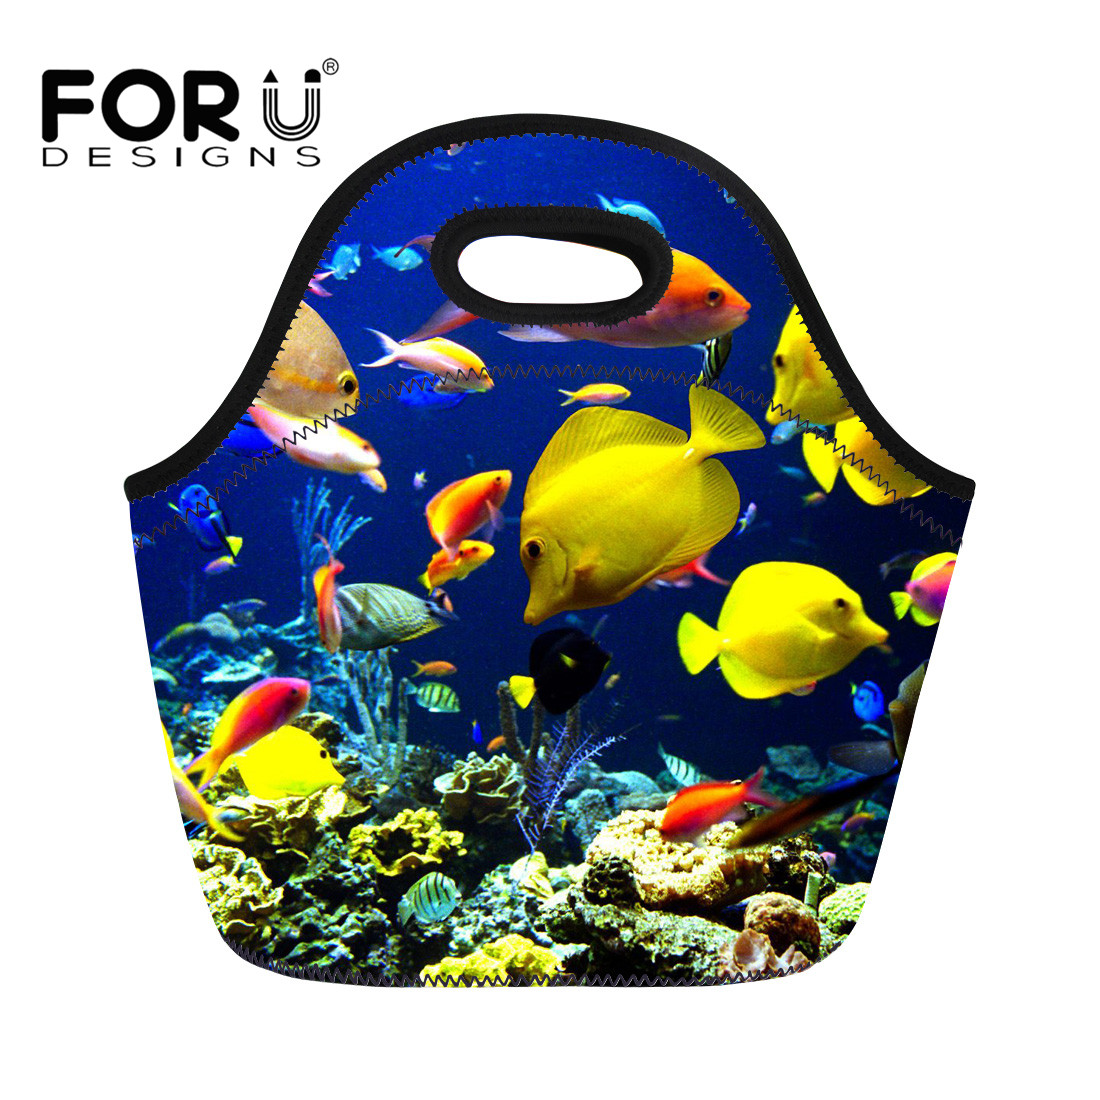 FORUDESIGNS Lunch Bag for Women Kids Blue Ocean Tropical Fish Printing Neoprene Thermal Insulated Picnic Cooler Bolsa Termica